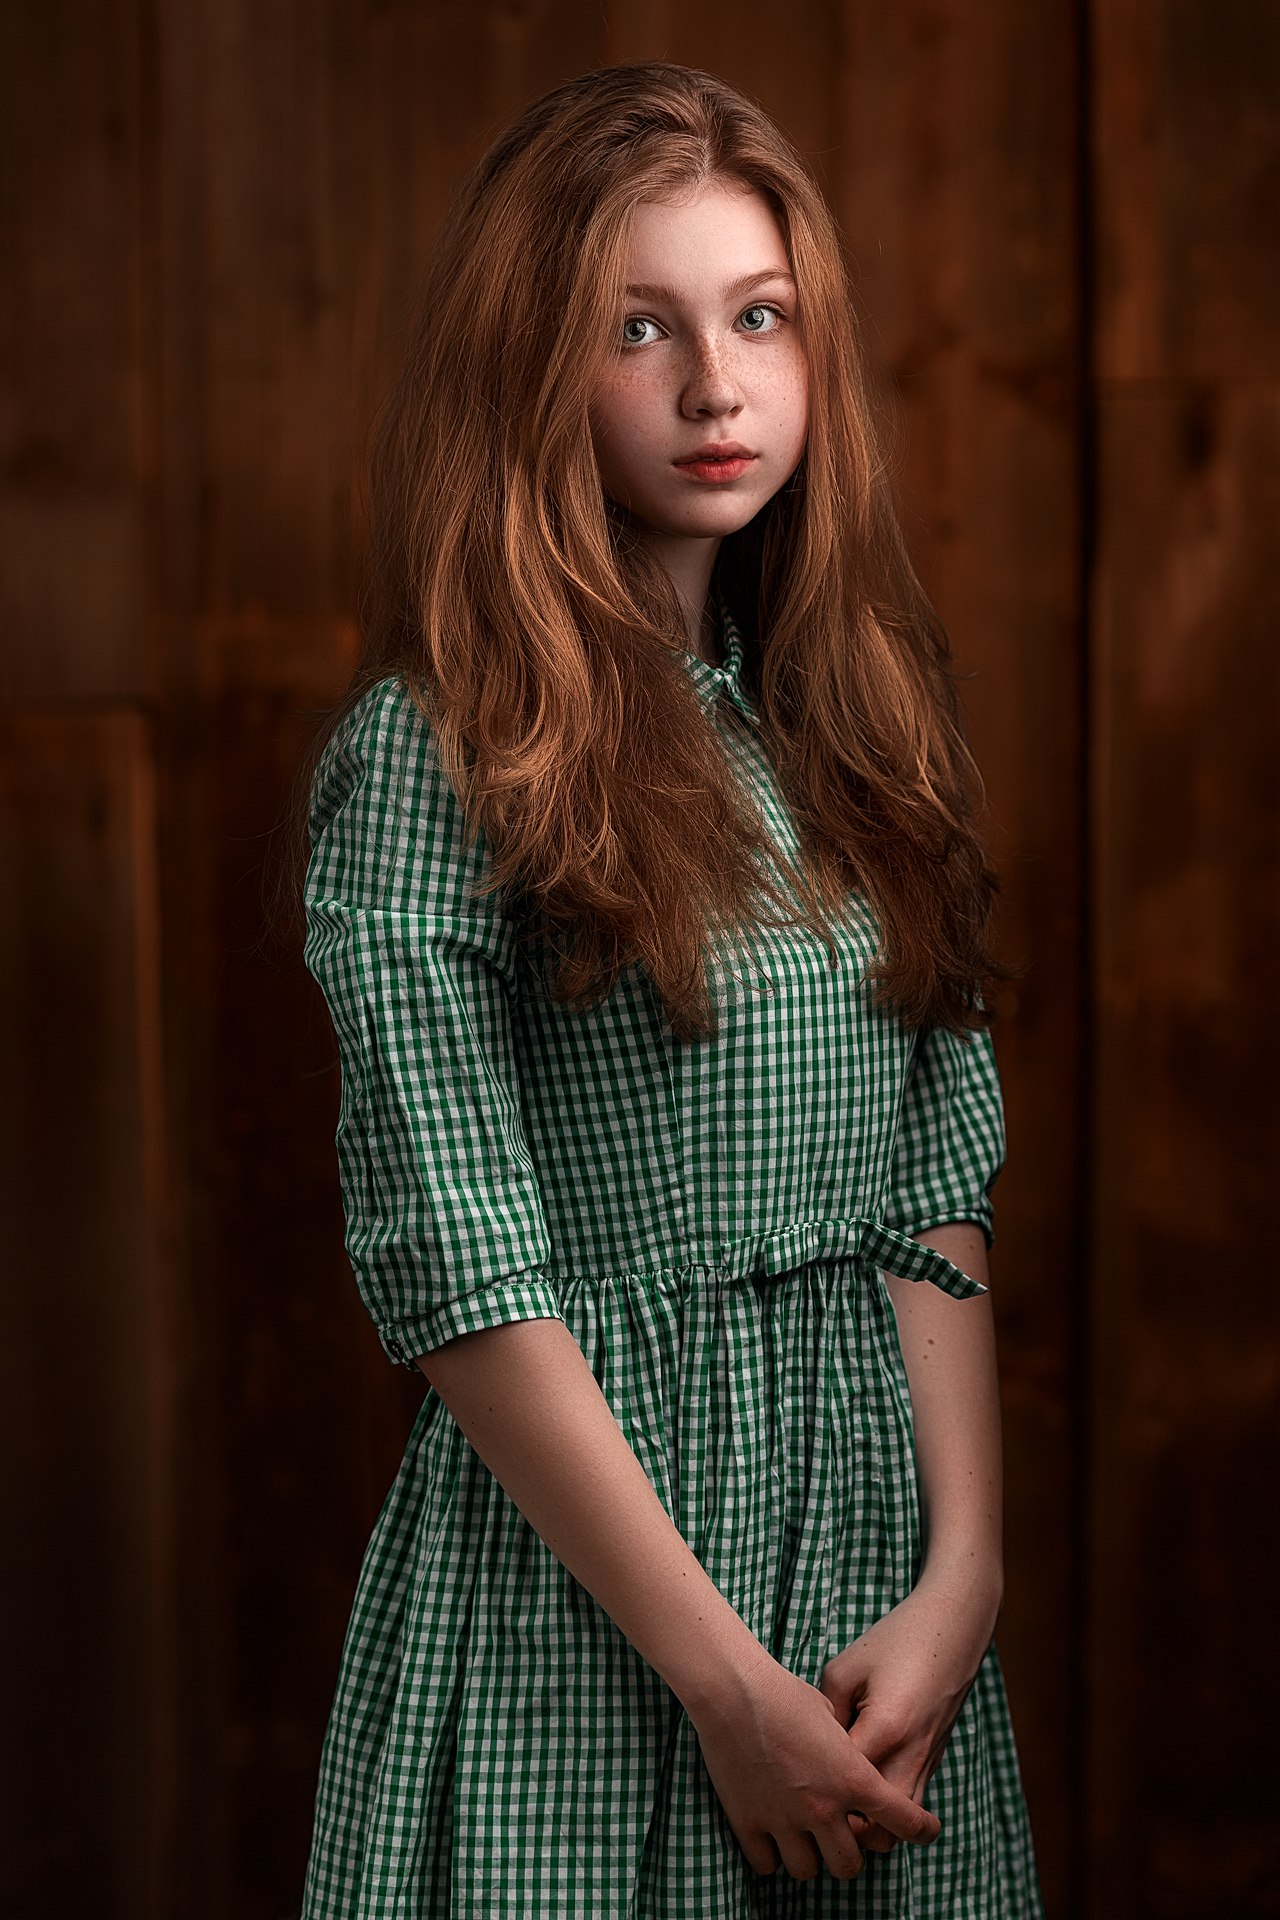 young, beauty, girl, red, color, hair, green, dress, art, shy, model, eyes, emotions, portrait, light, Гладков Степан